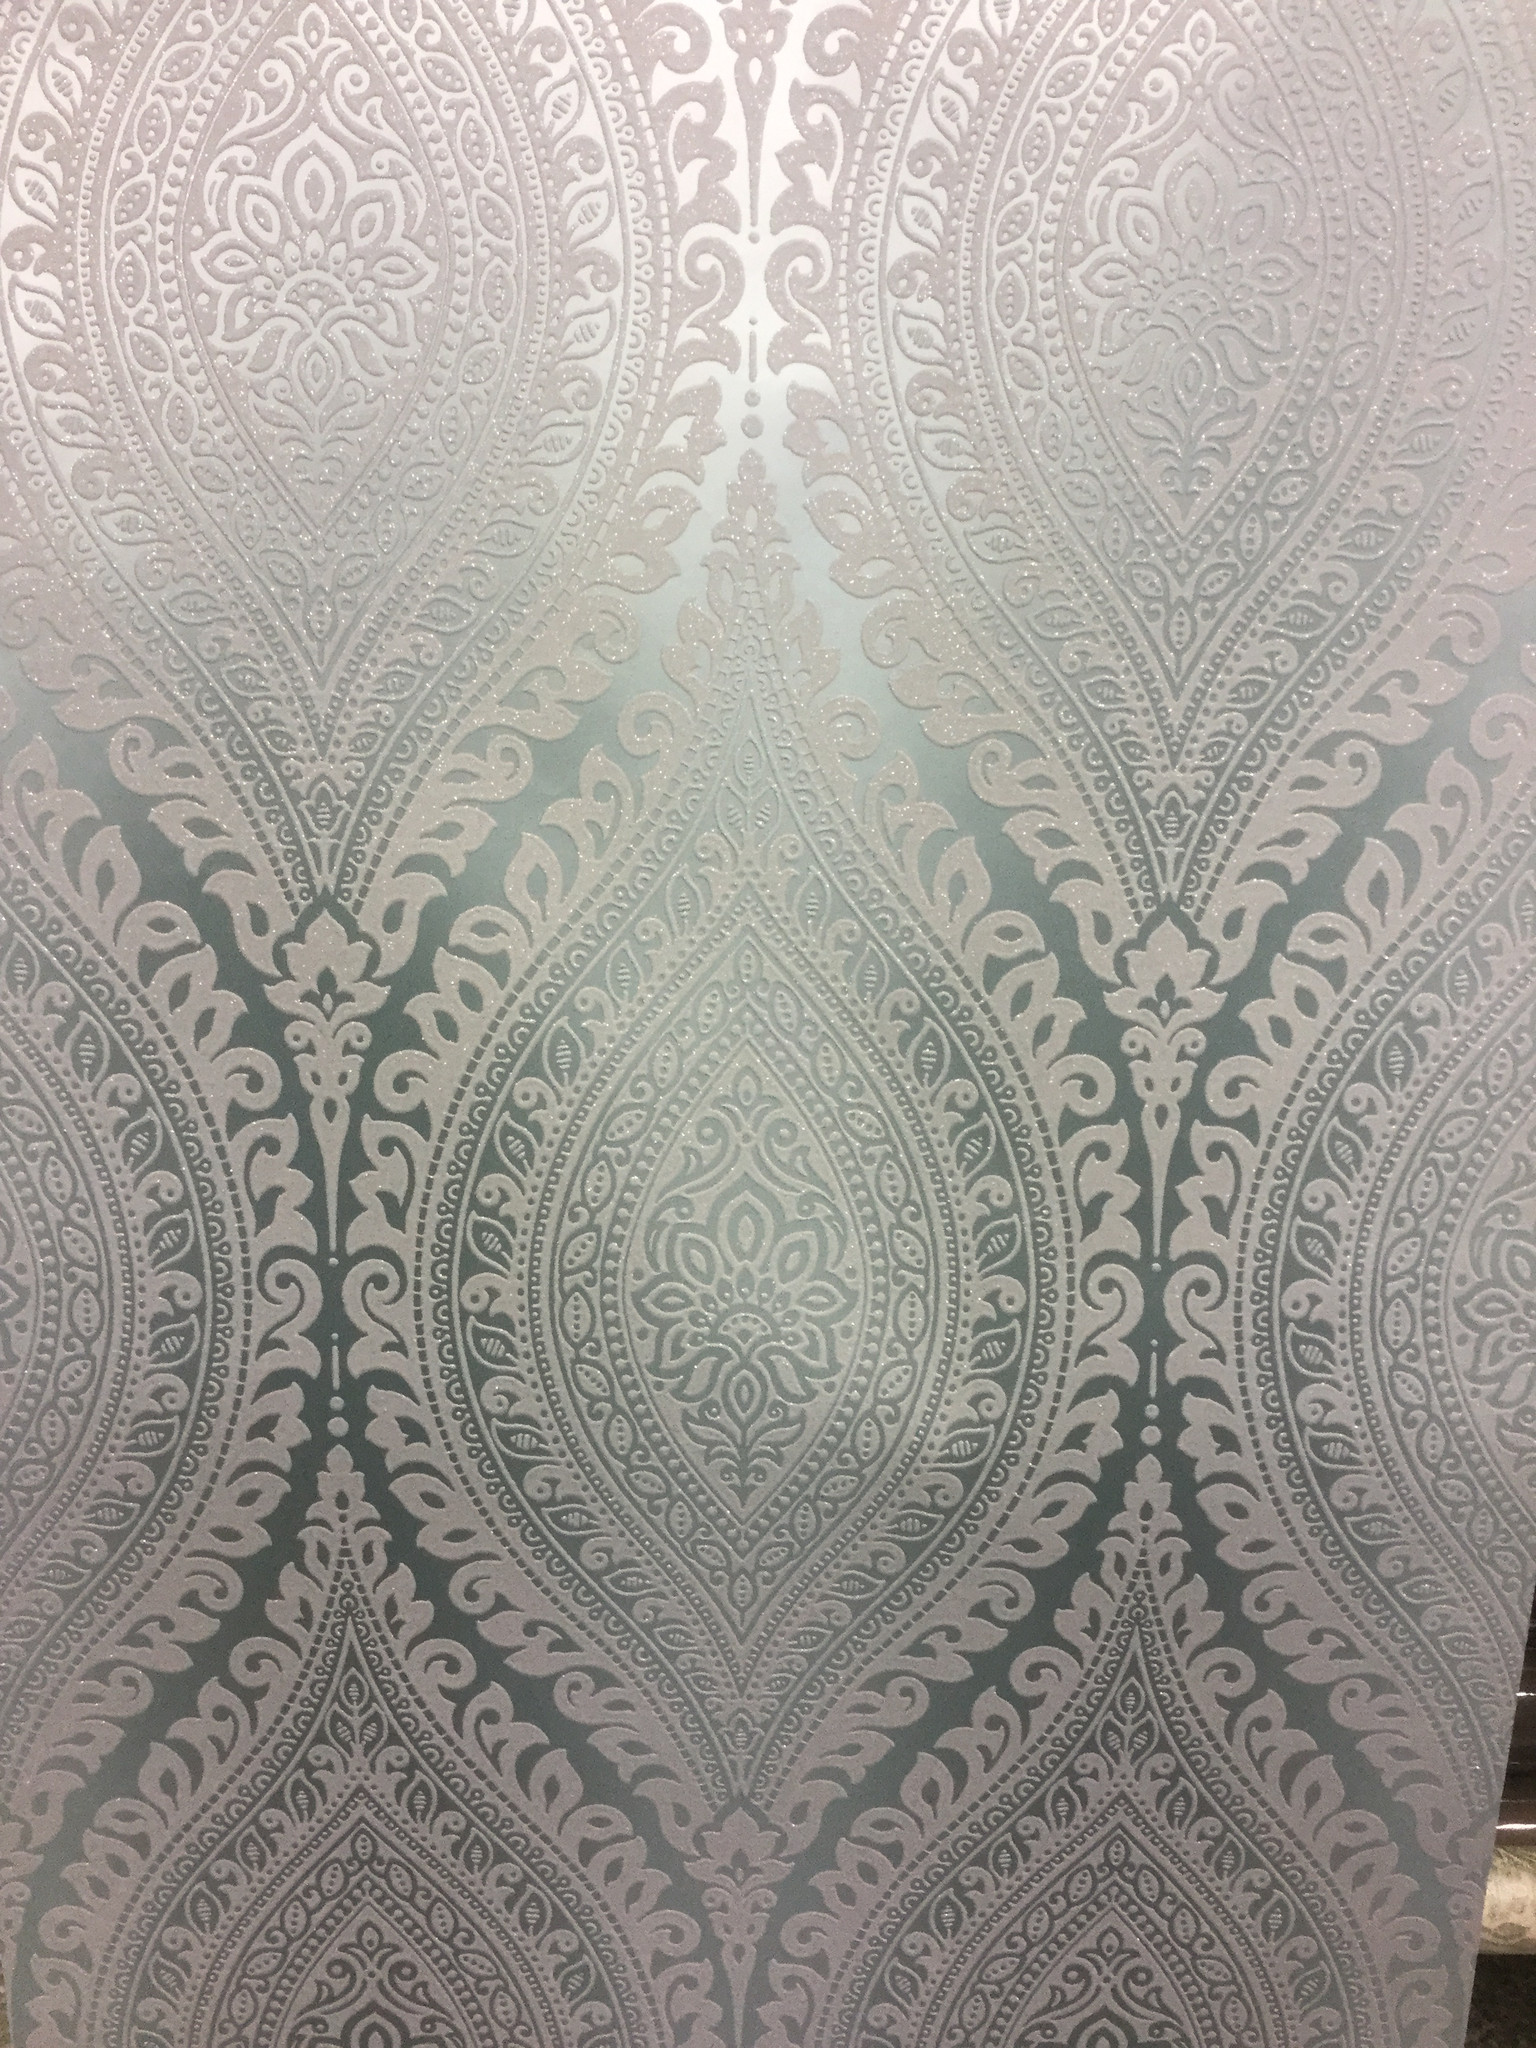 Damask Wallpaper Metallic Glitter Sparkle Textured Embossed Luxury